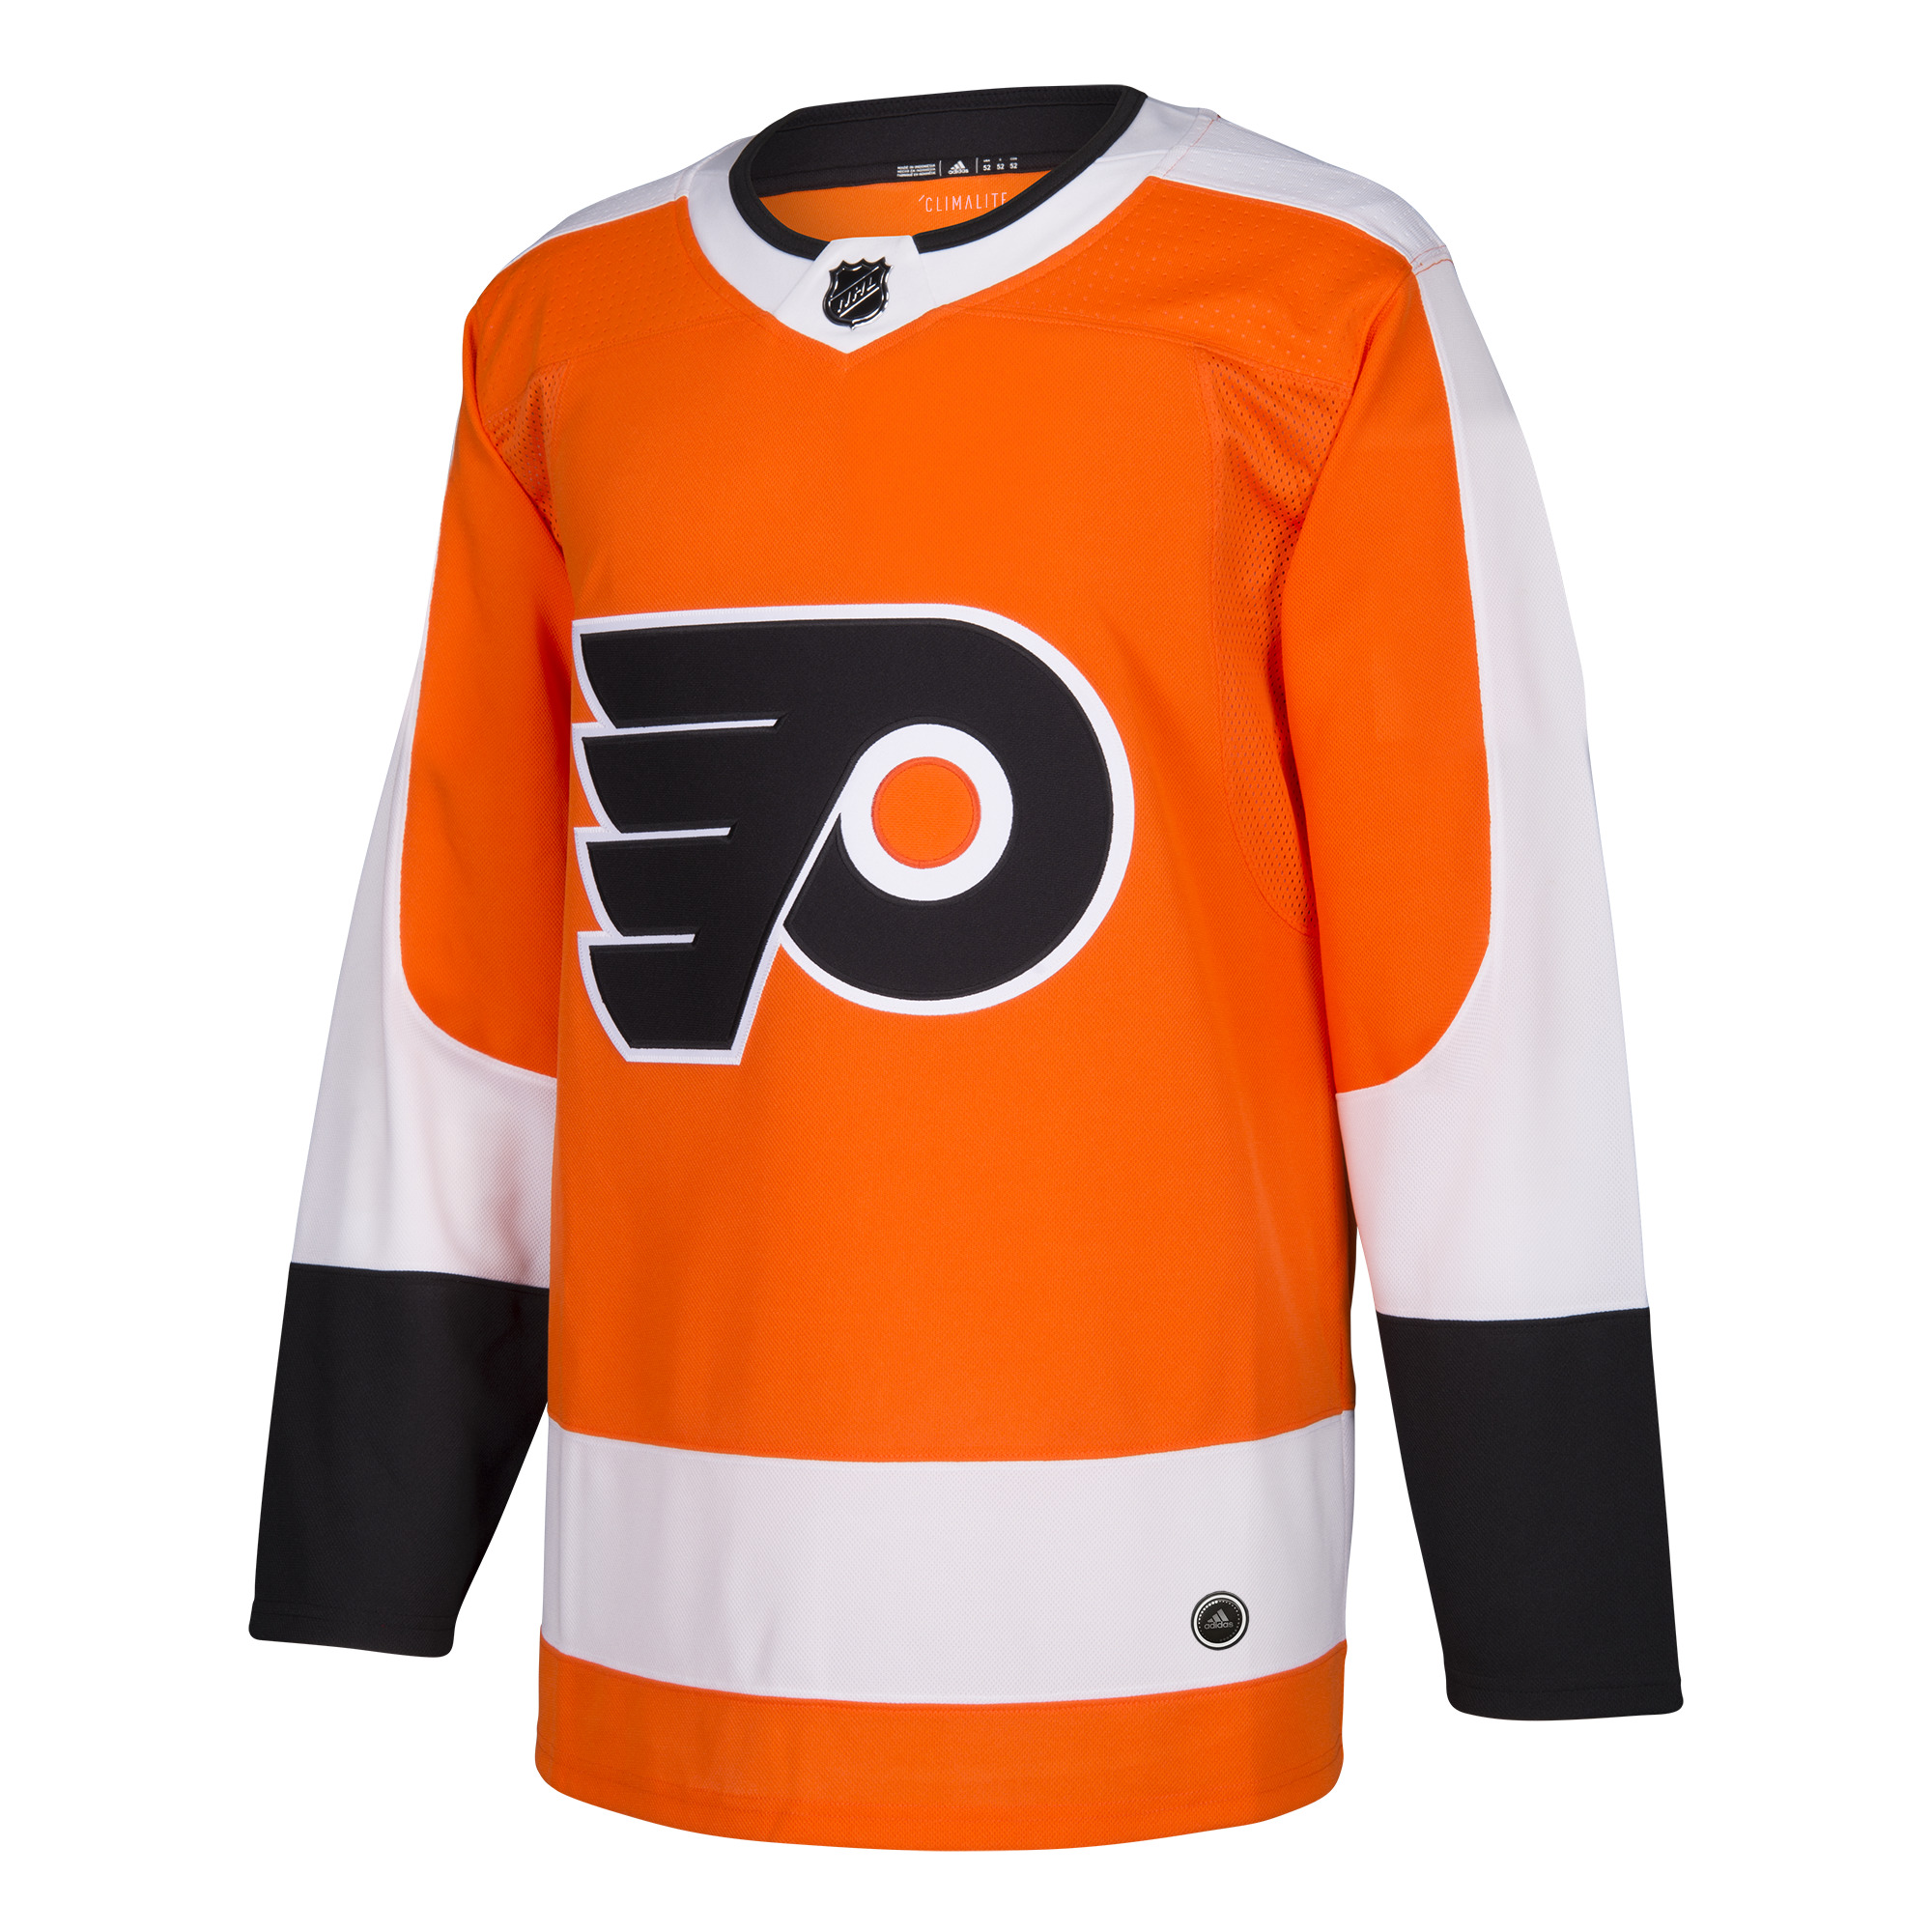 fac511955 Philadelphia Flyers Men s ADIZERO Home Orange Jersey by Adidas ...